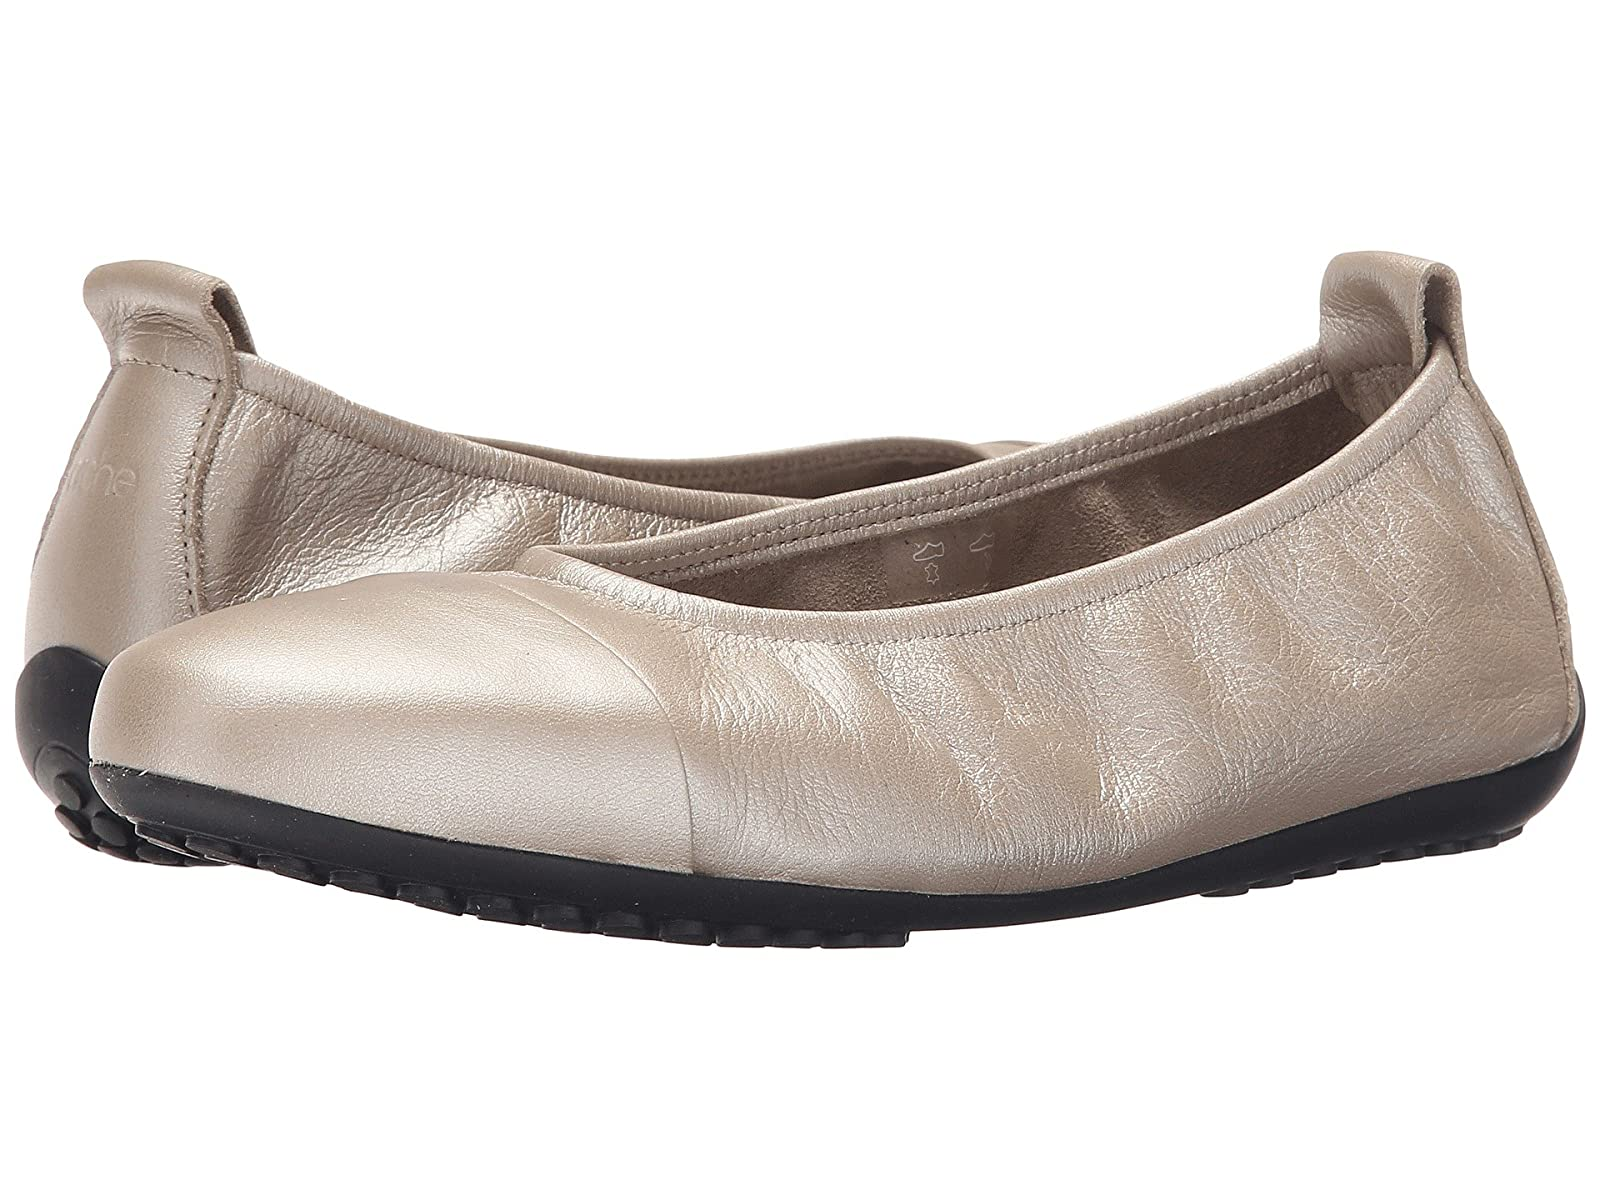 Arche FanthiCheap and distinctive eye-catching shoes